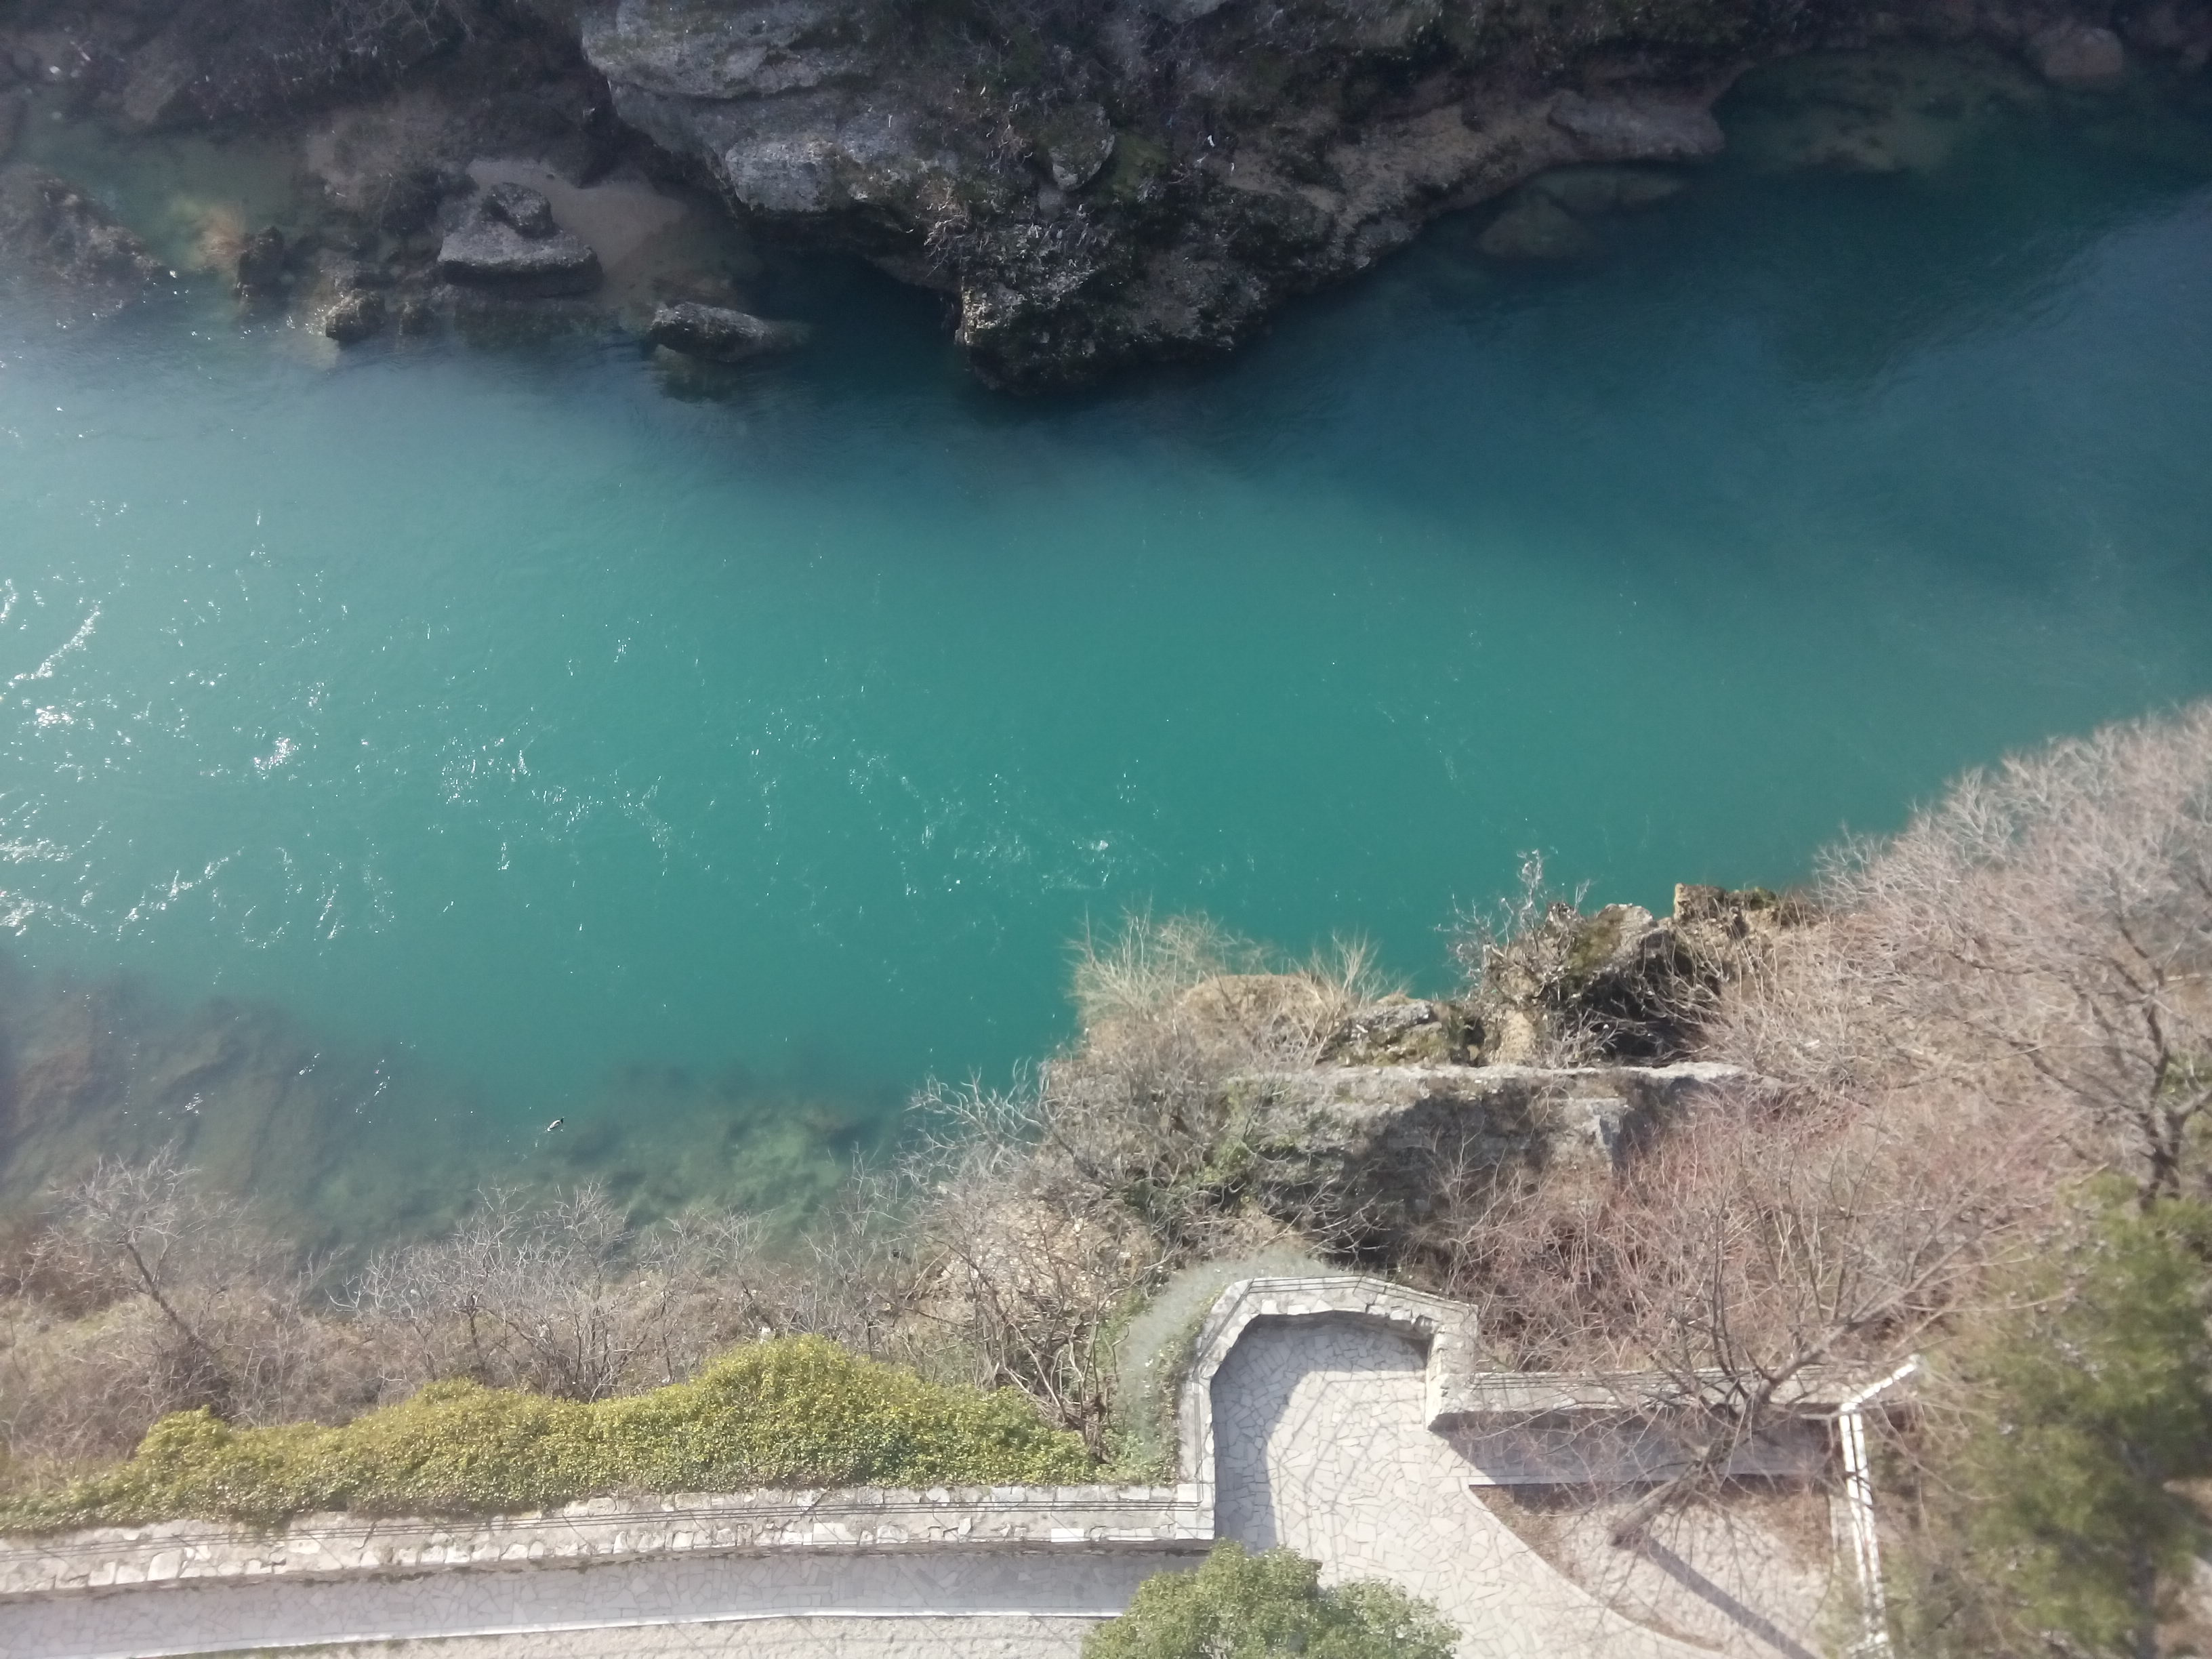 A bright blue-green river from above